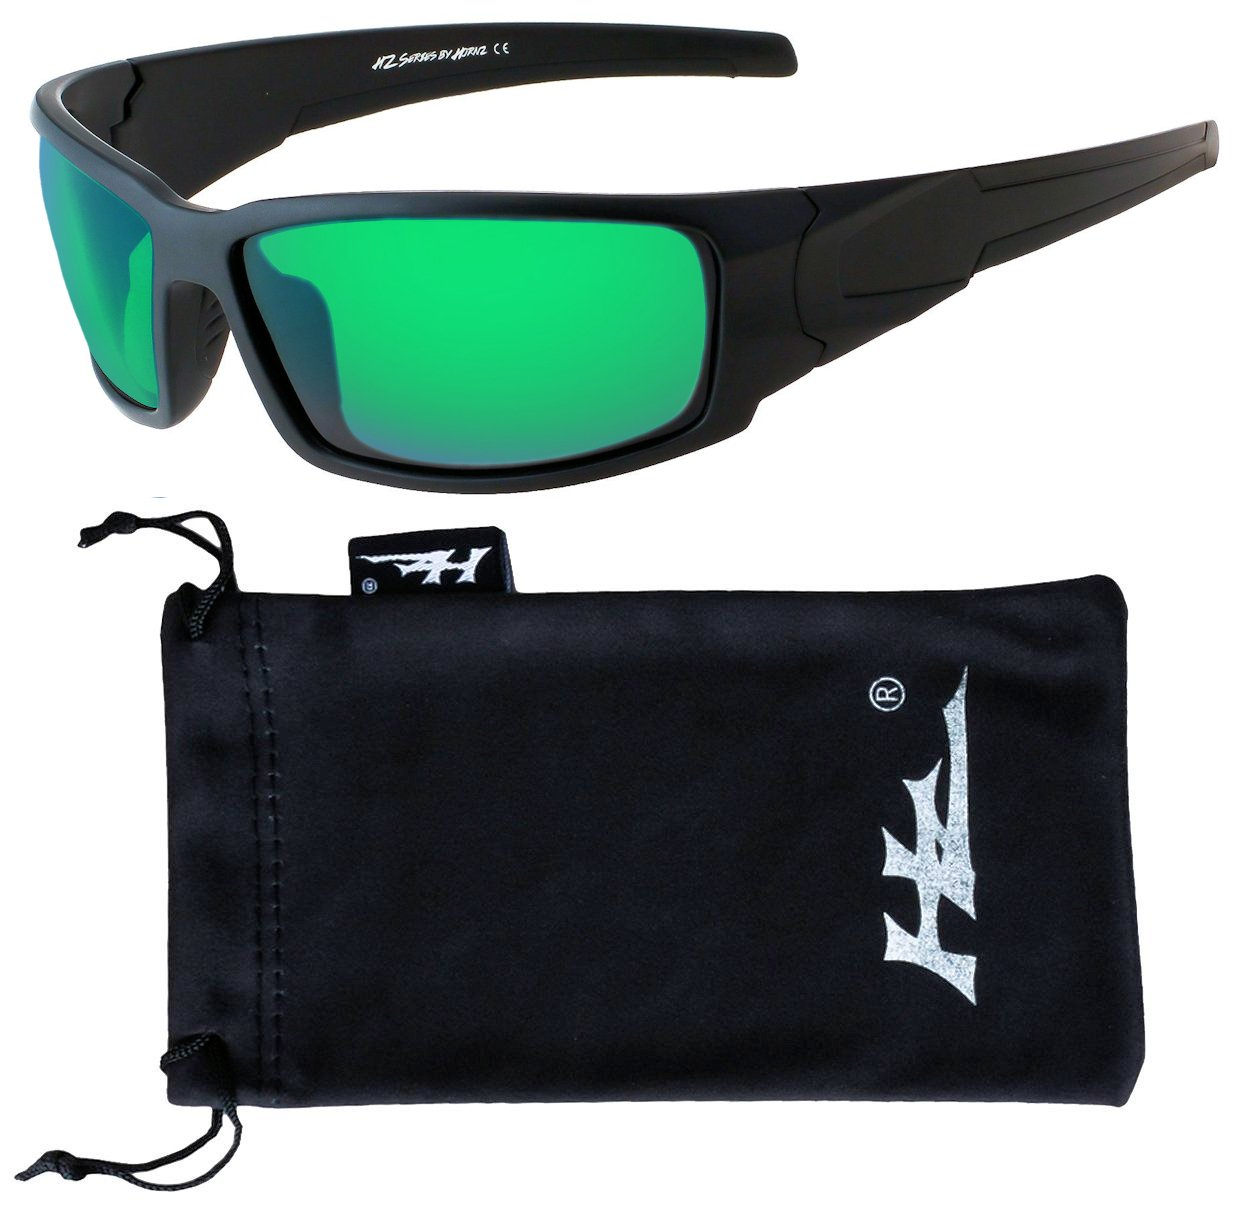 HZ Series Aquabull - Premium Polarized Sunglasses by Hornz – Matte Black Frame – Emerald Green Lens by Hornz